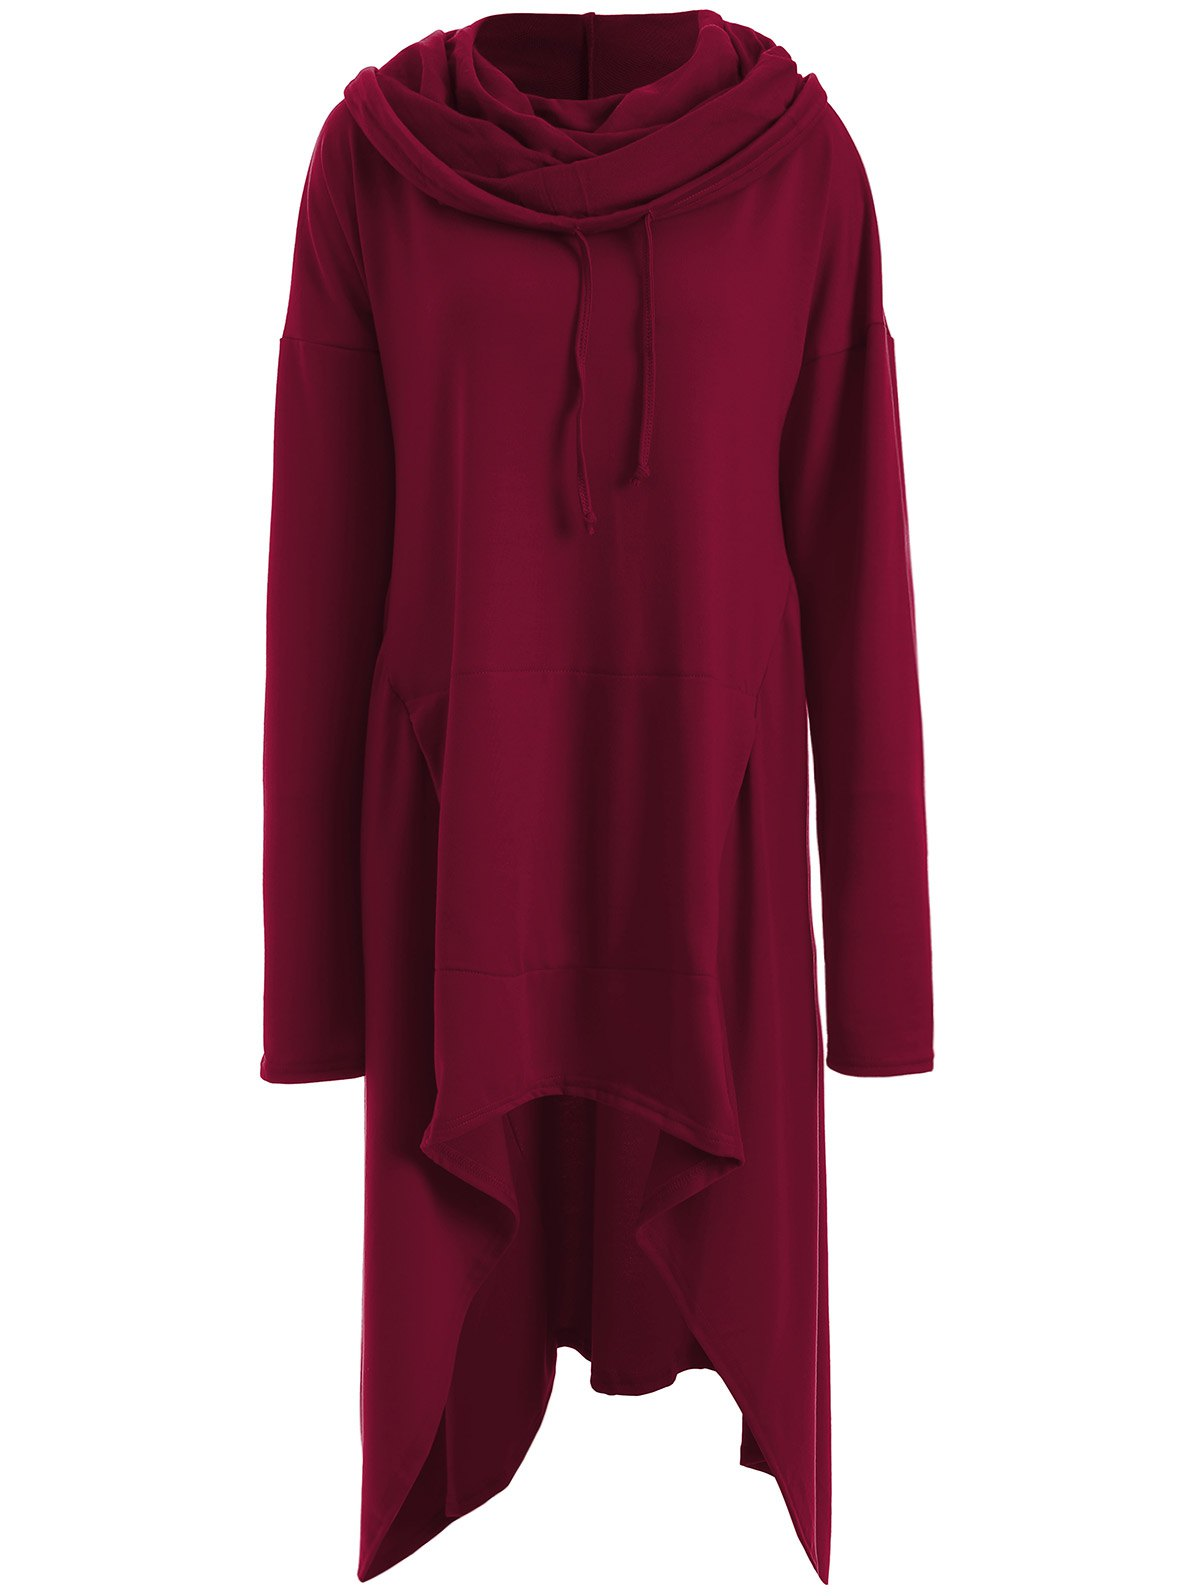 Asymmetrical Pocket Design Loose-Fitting Neck Hoodie - WINE RED M